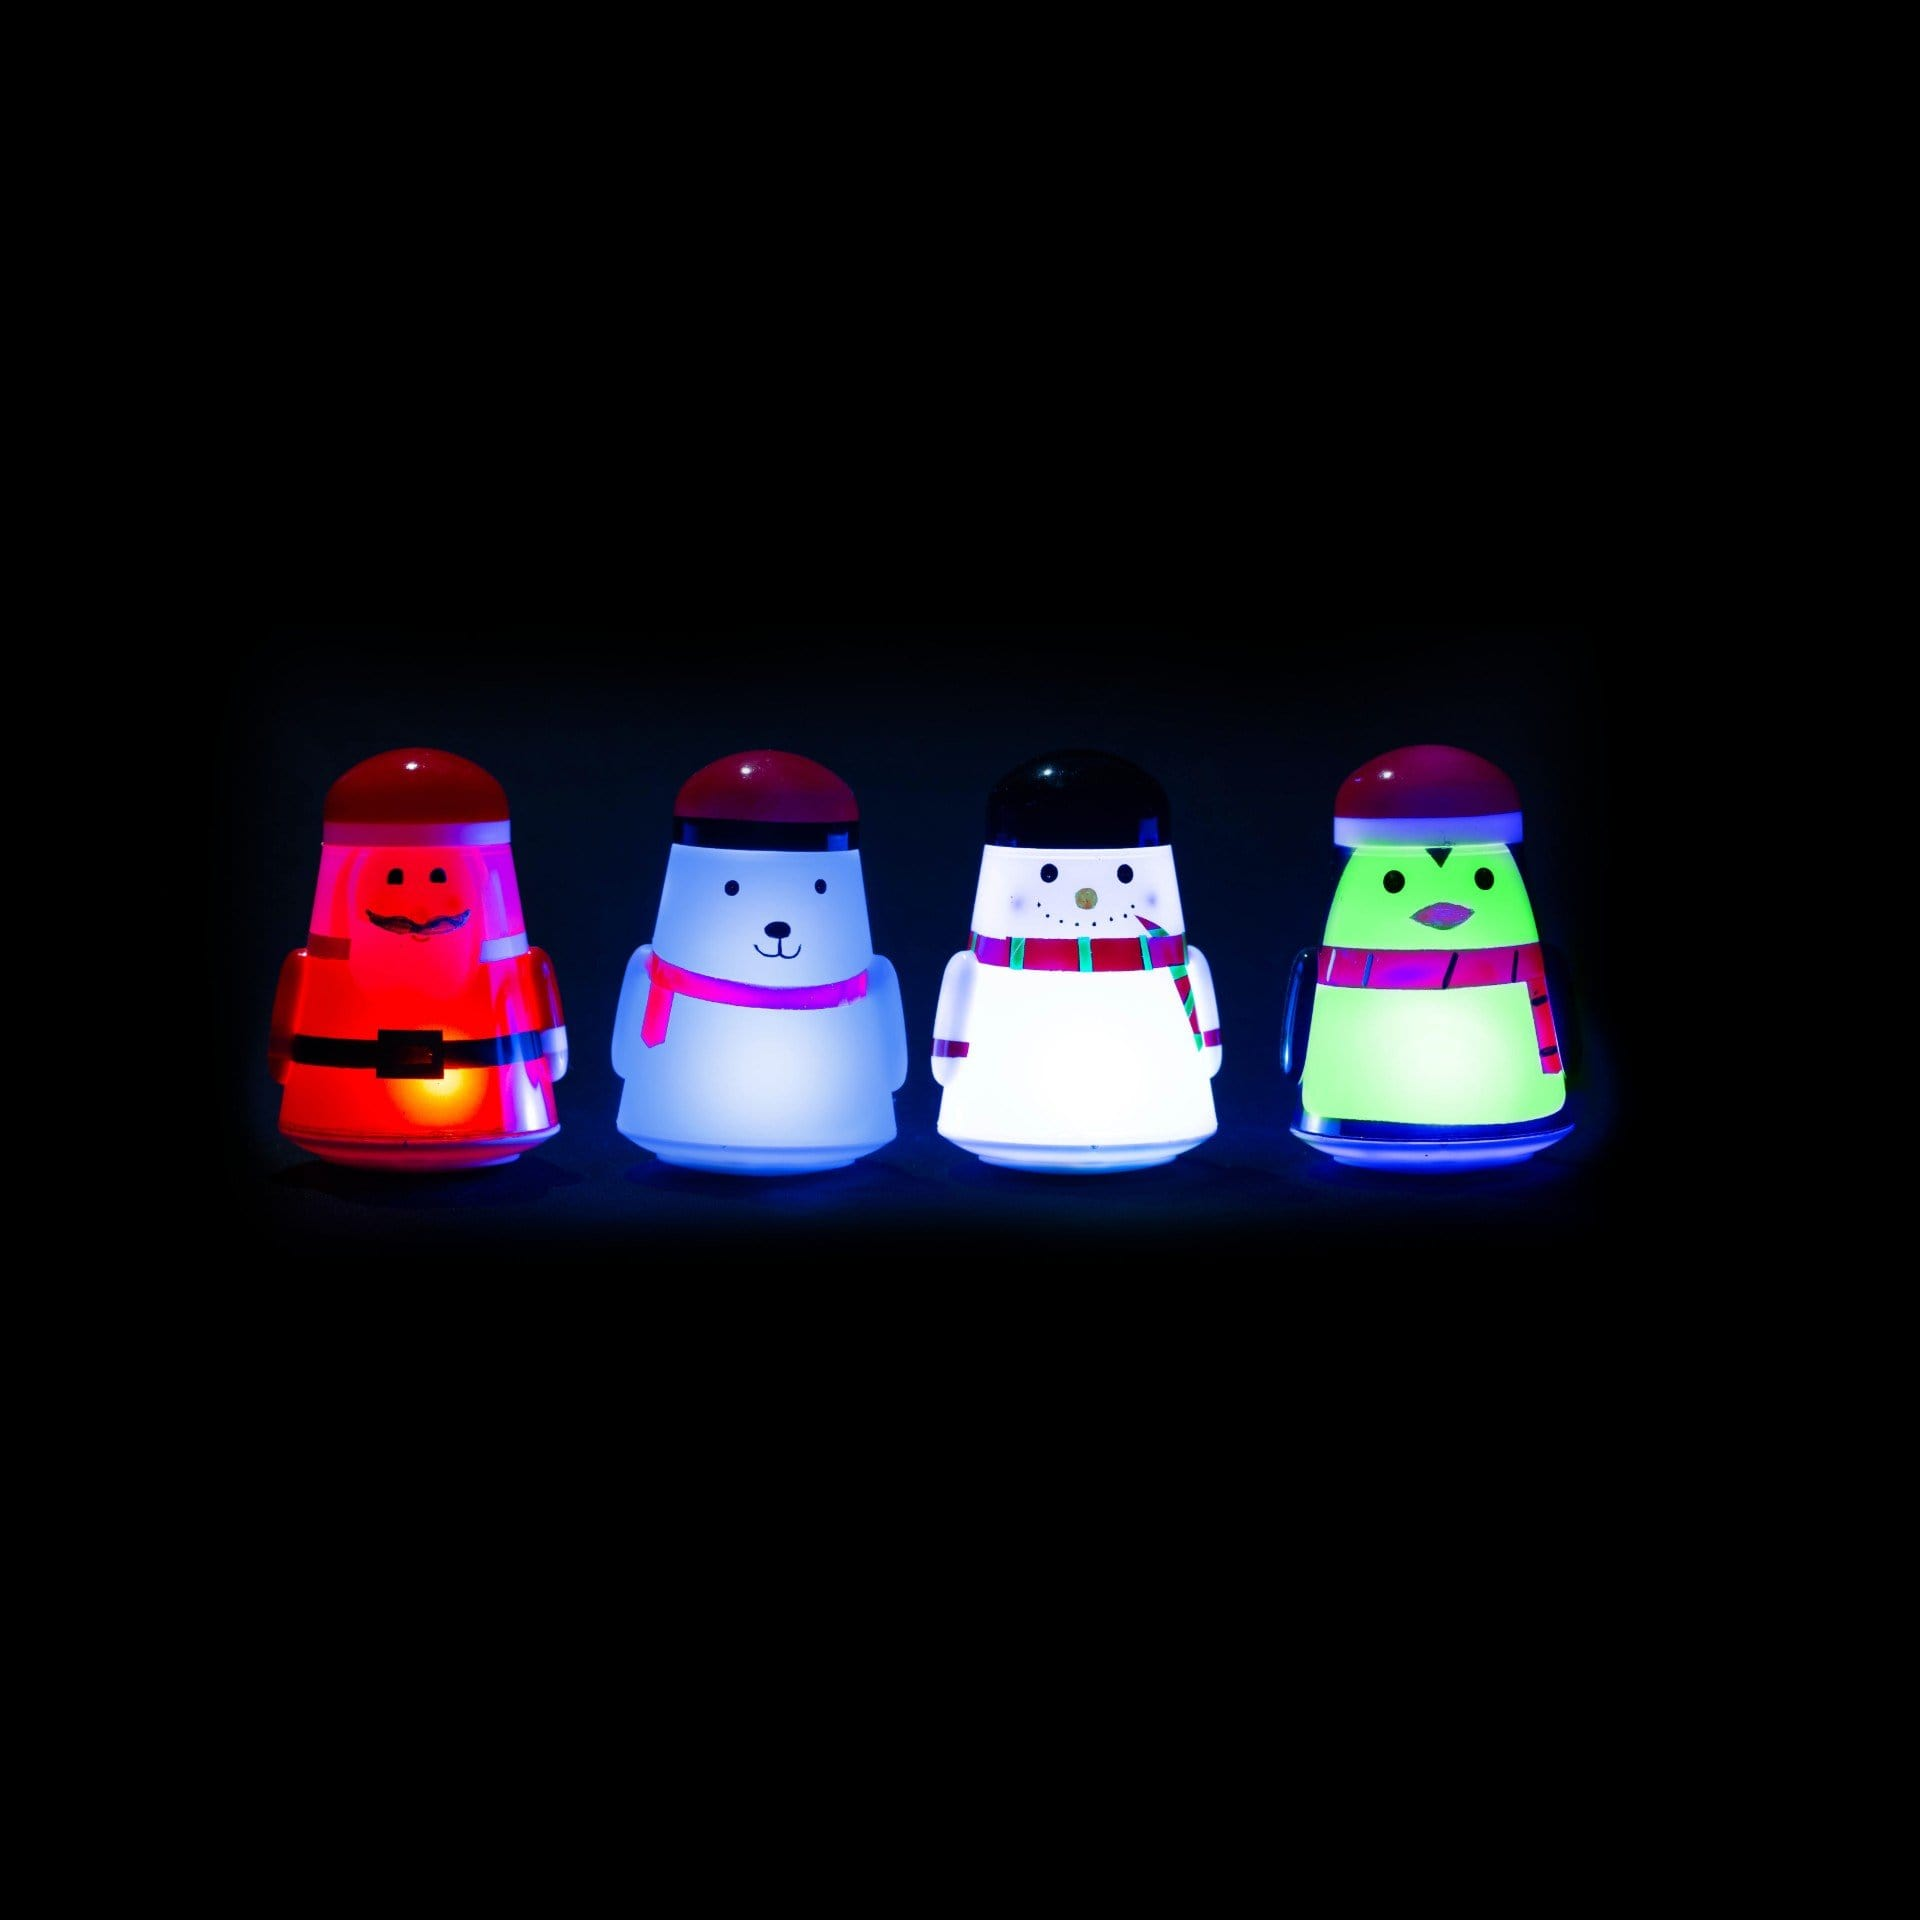 Light-Up Wobbly Characters